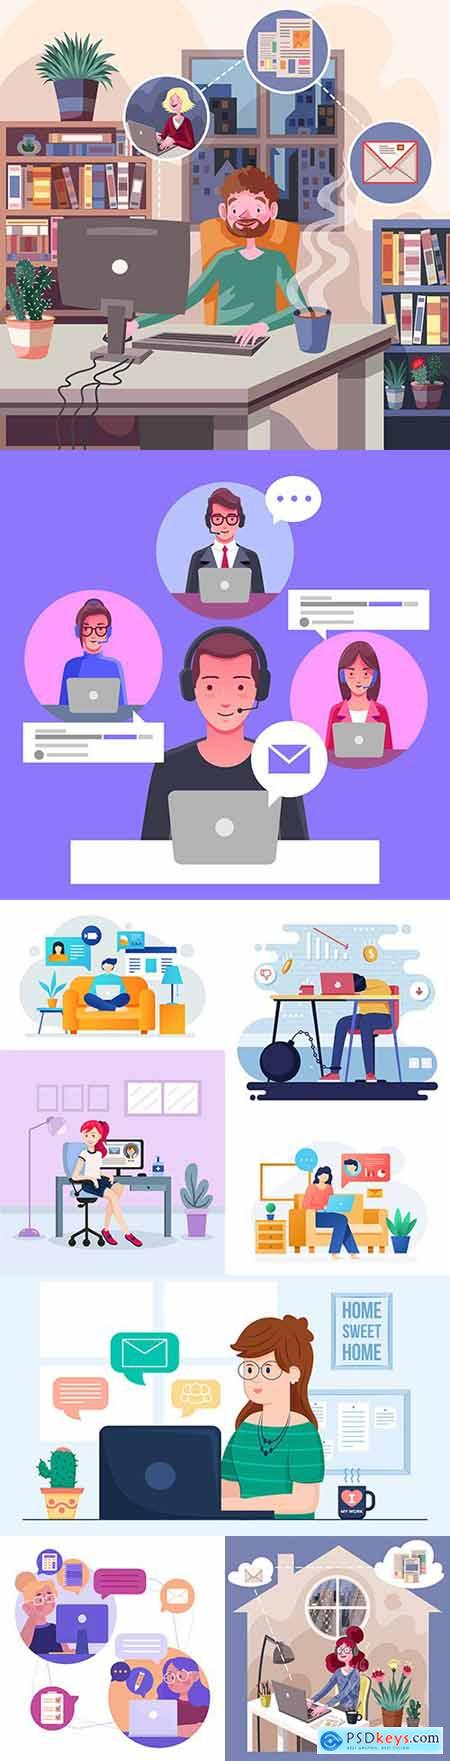 Remote work at home concept of illustration 3